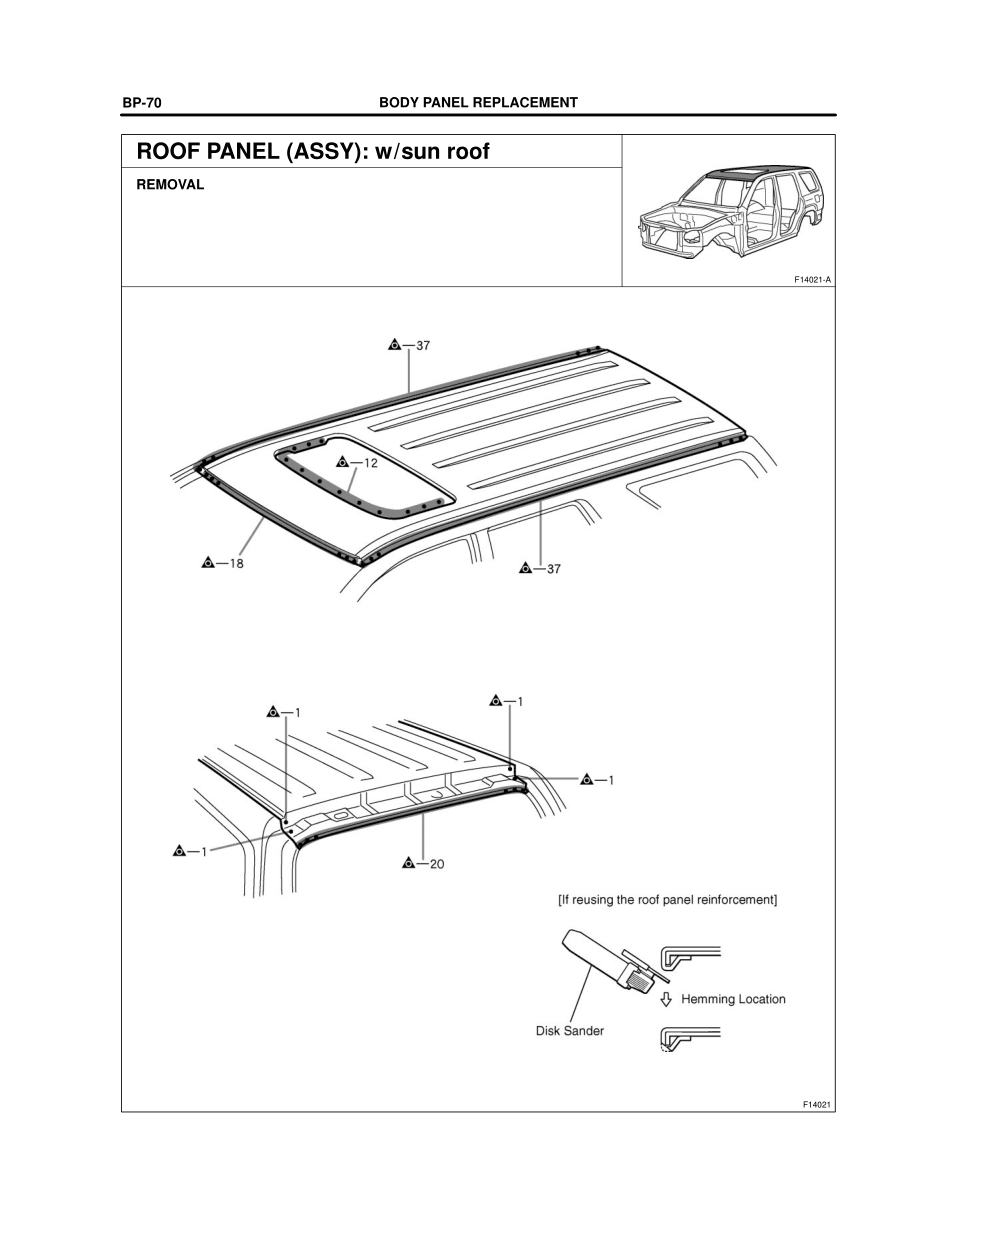 2003-2008 TOYOTA 4Runner Repair Manual, Roof Panel (Assy